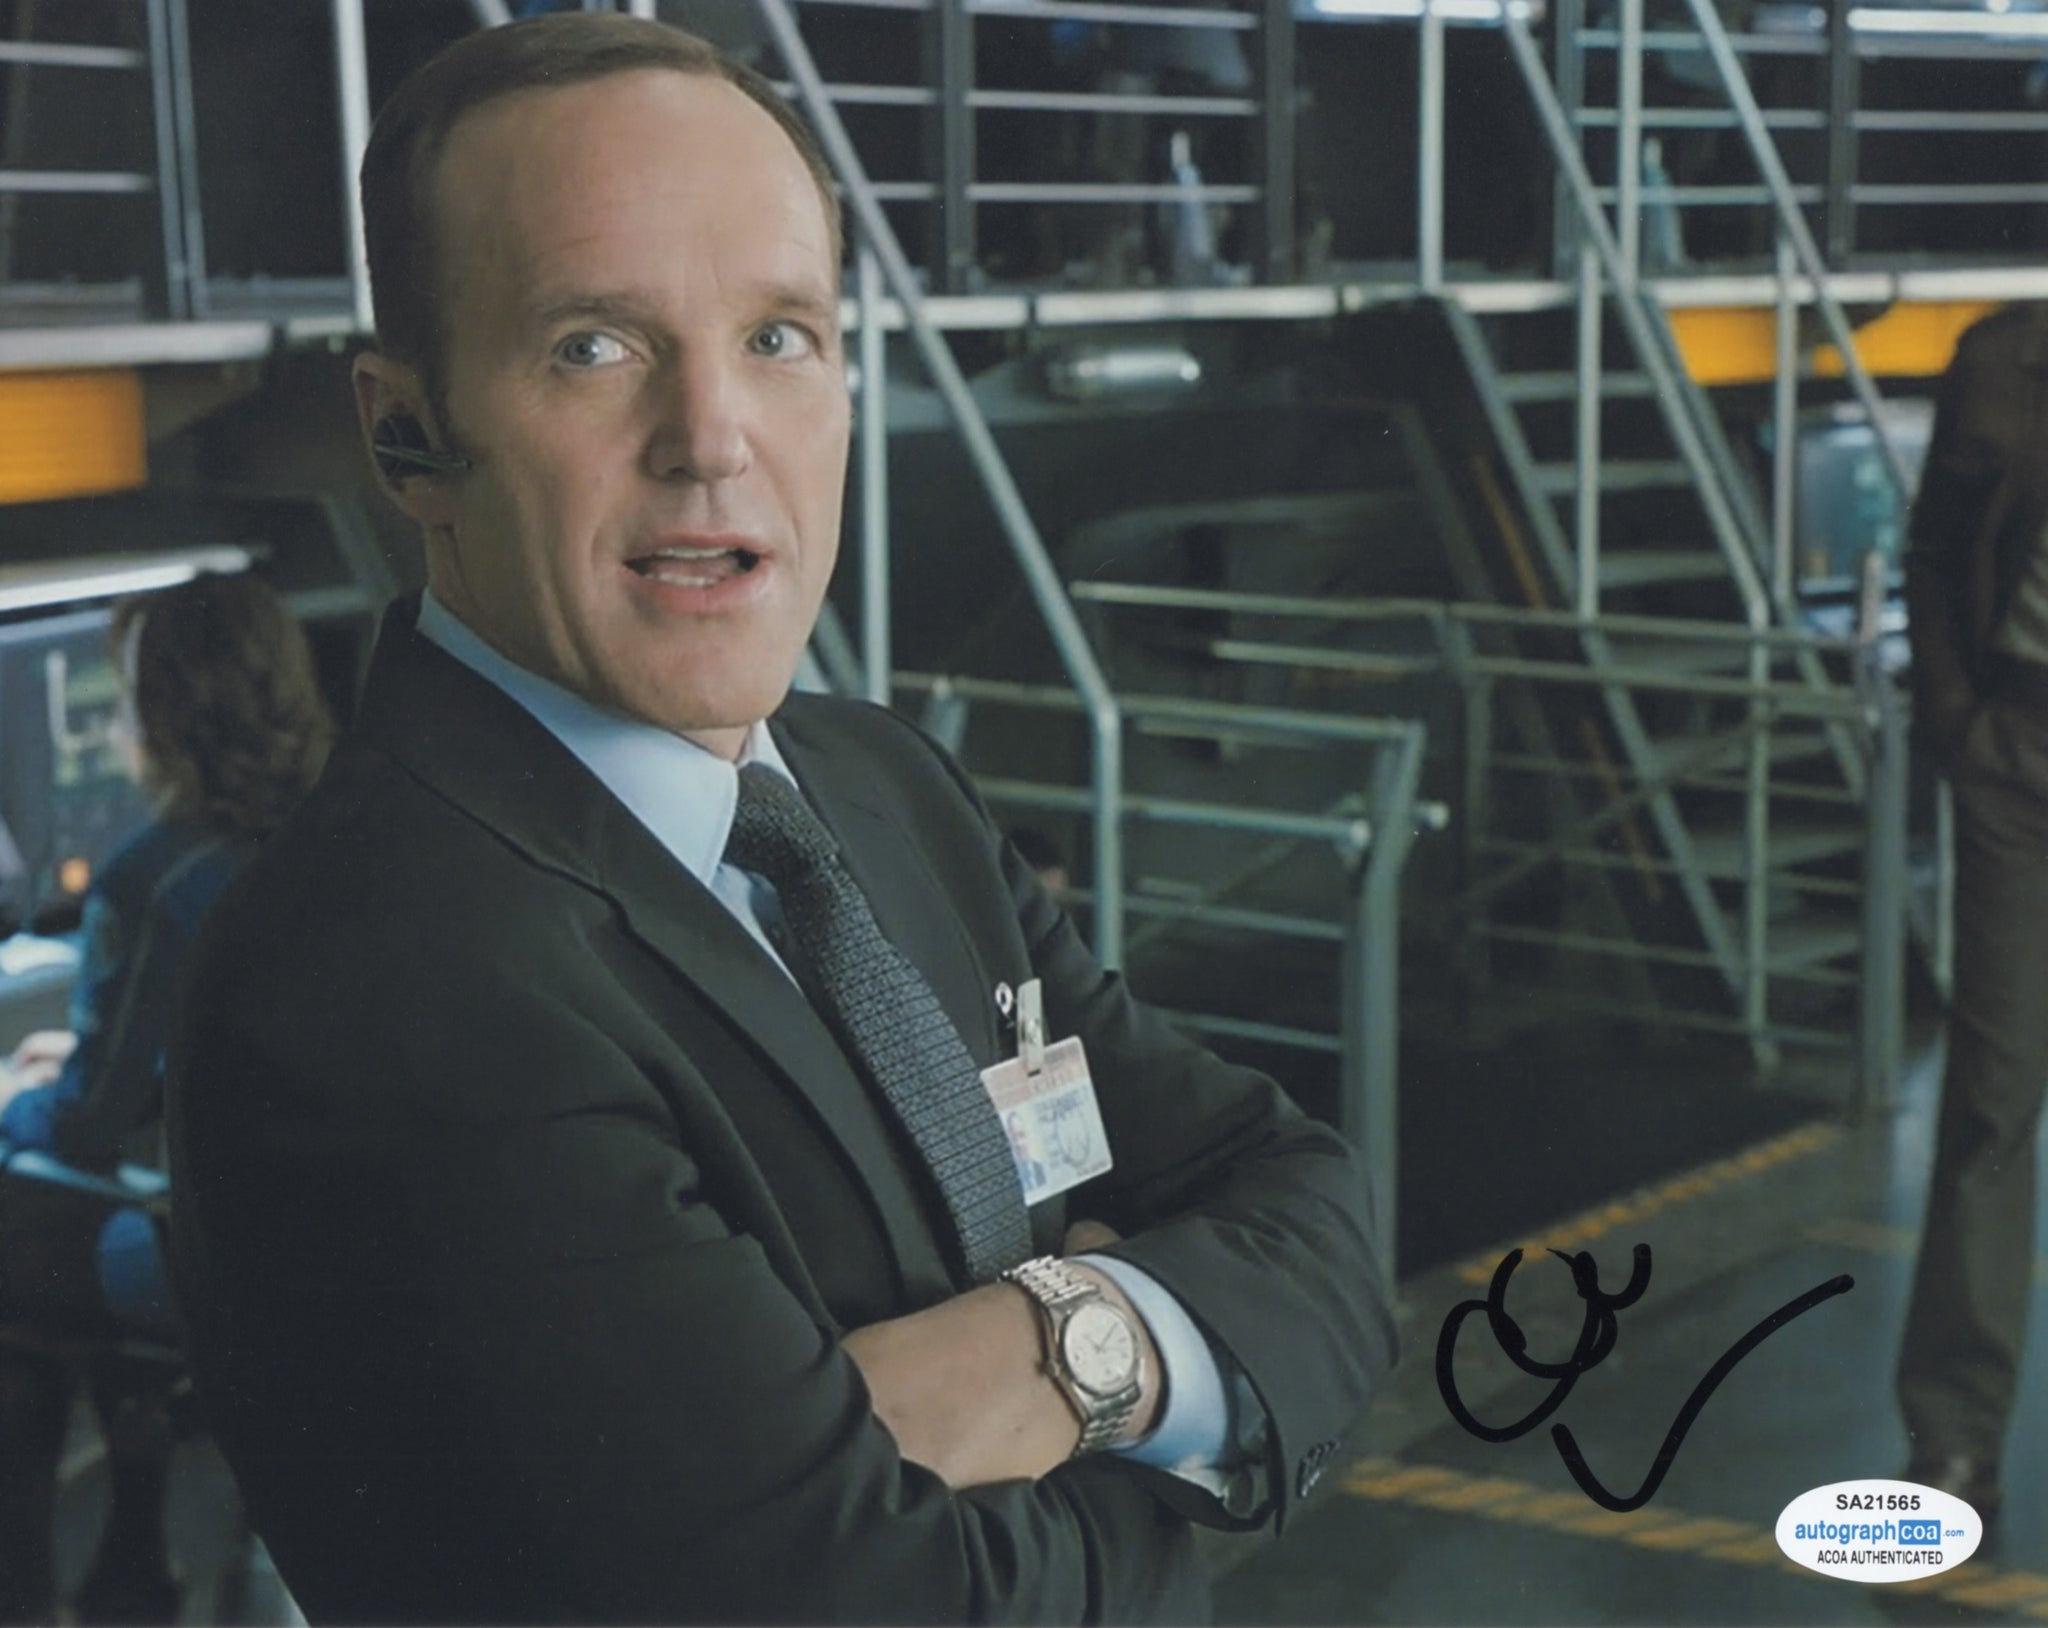 Clark Gregg Agents of Shield Signed Autograph 8x10 Photo ACOA #2 - Outlaw Hobbies Authentic Autographs